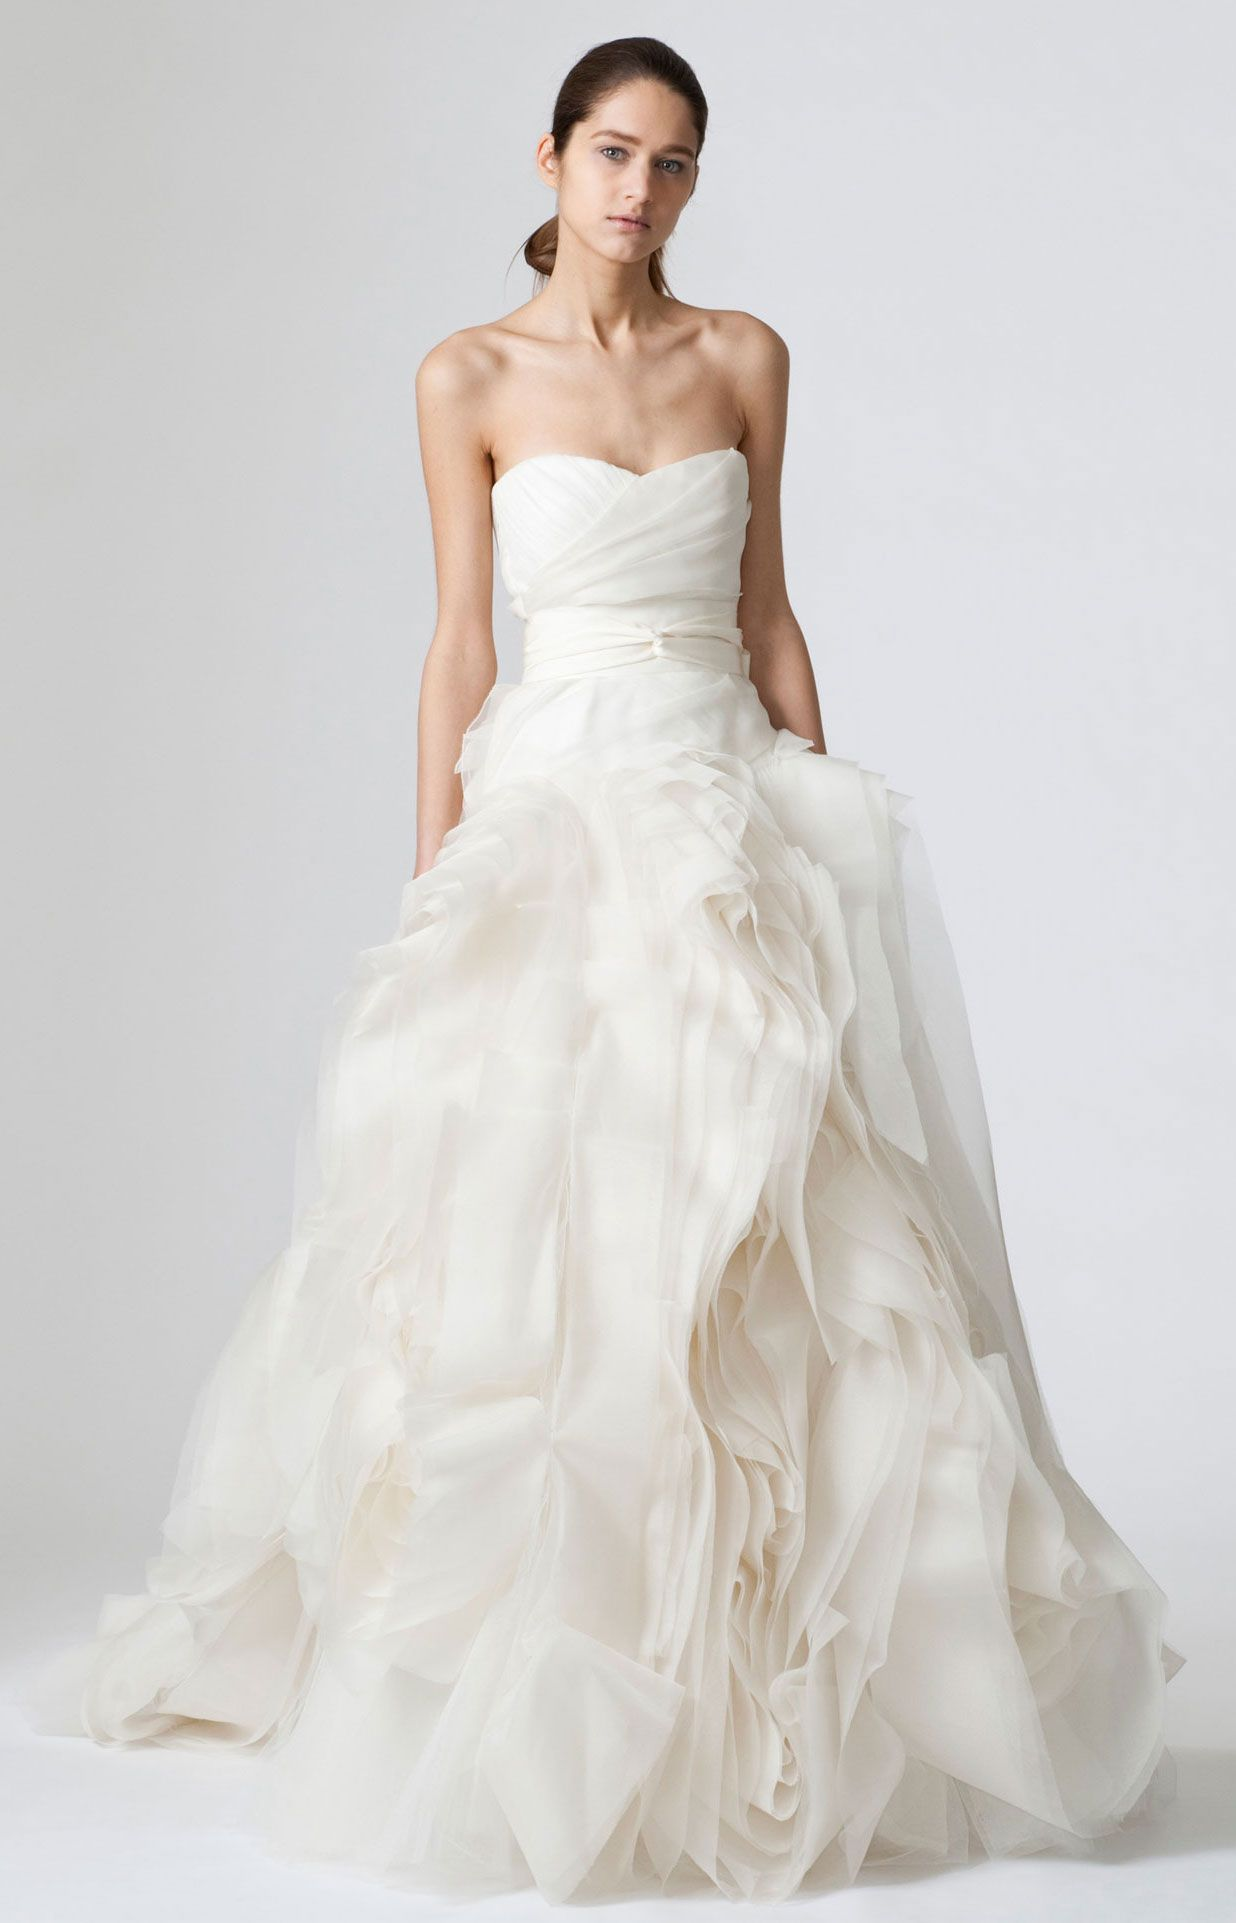 Vestiti Da Sposa Wang.Antonella Del Brusco Vera Wang Iconic Showroom Abiti Da Sposa